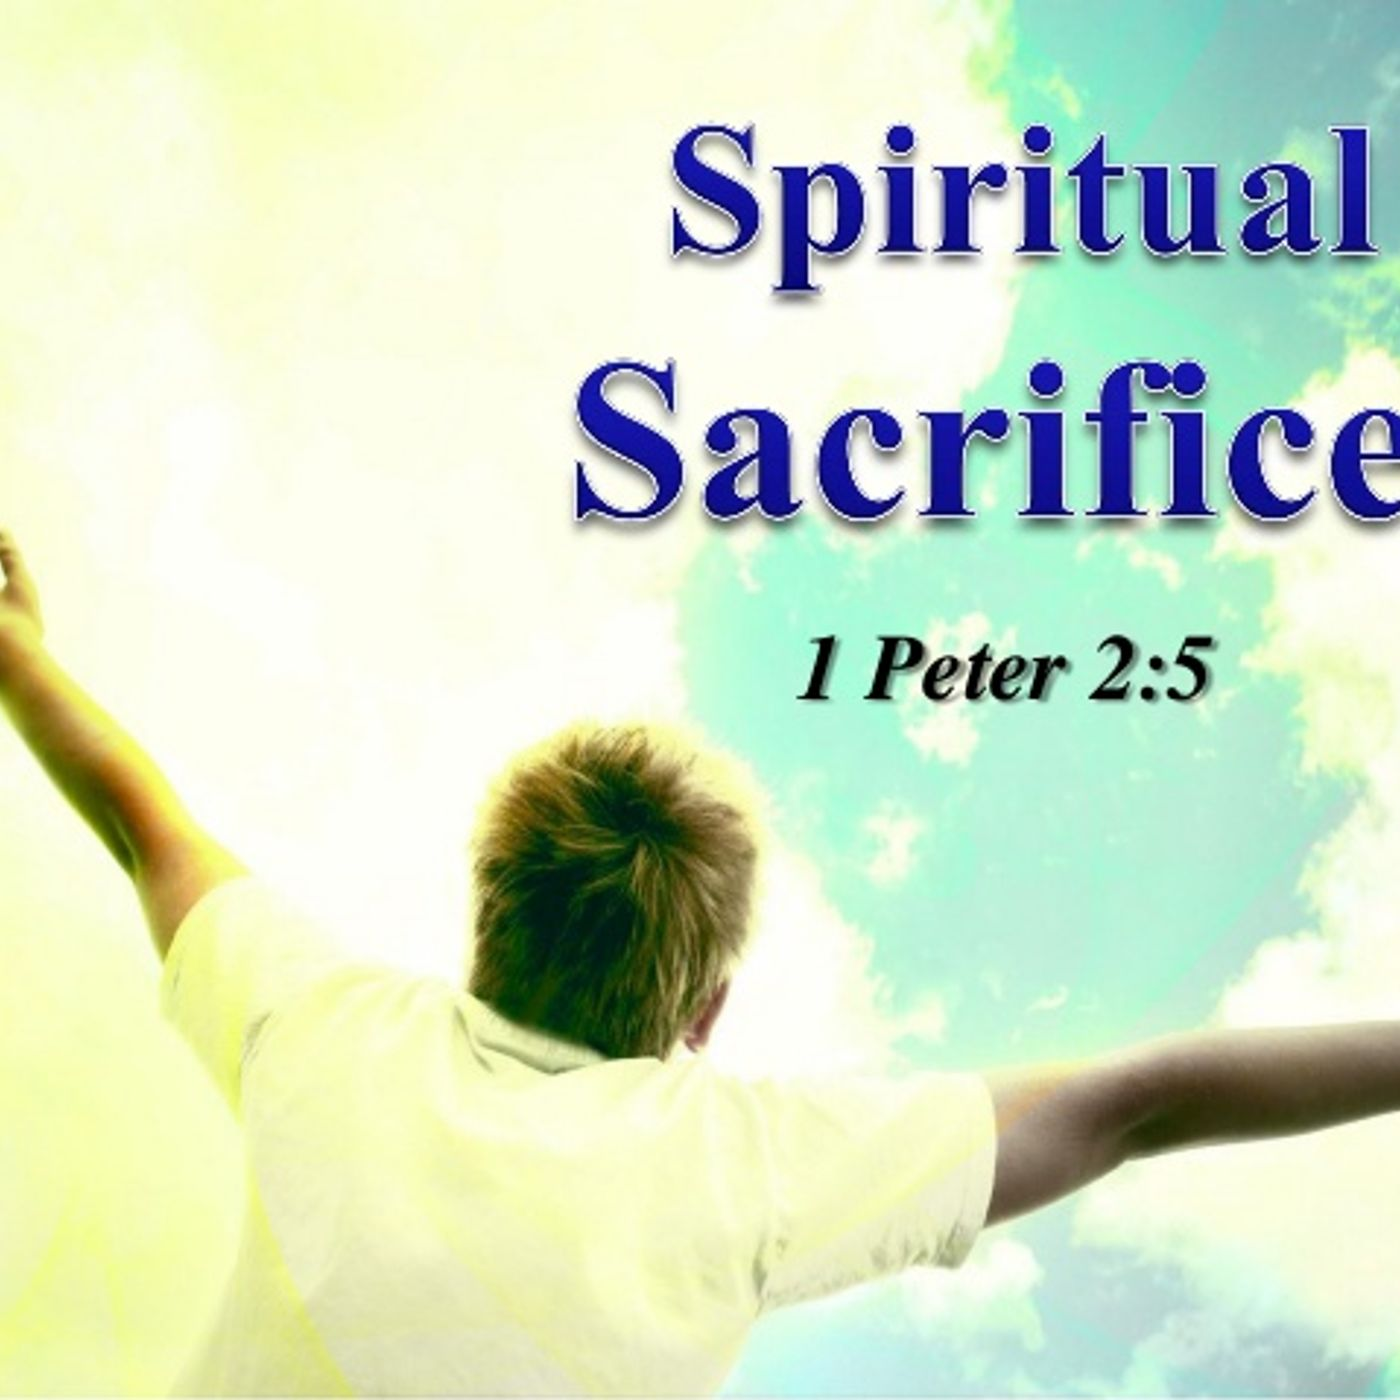 How We Should Offer our Spiritual Sacrifices